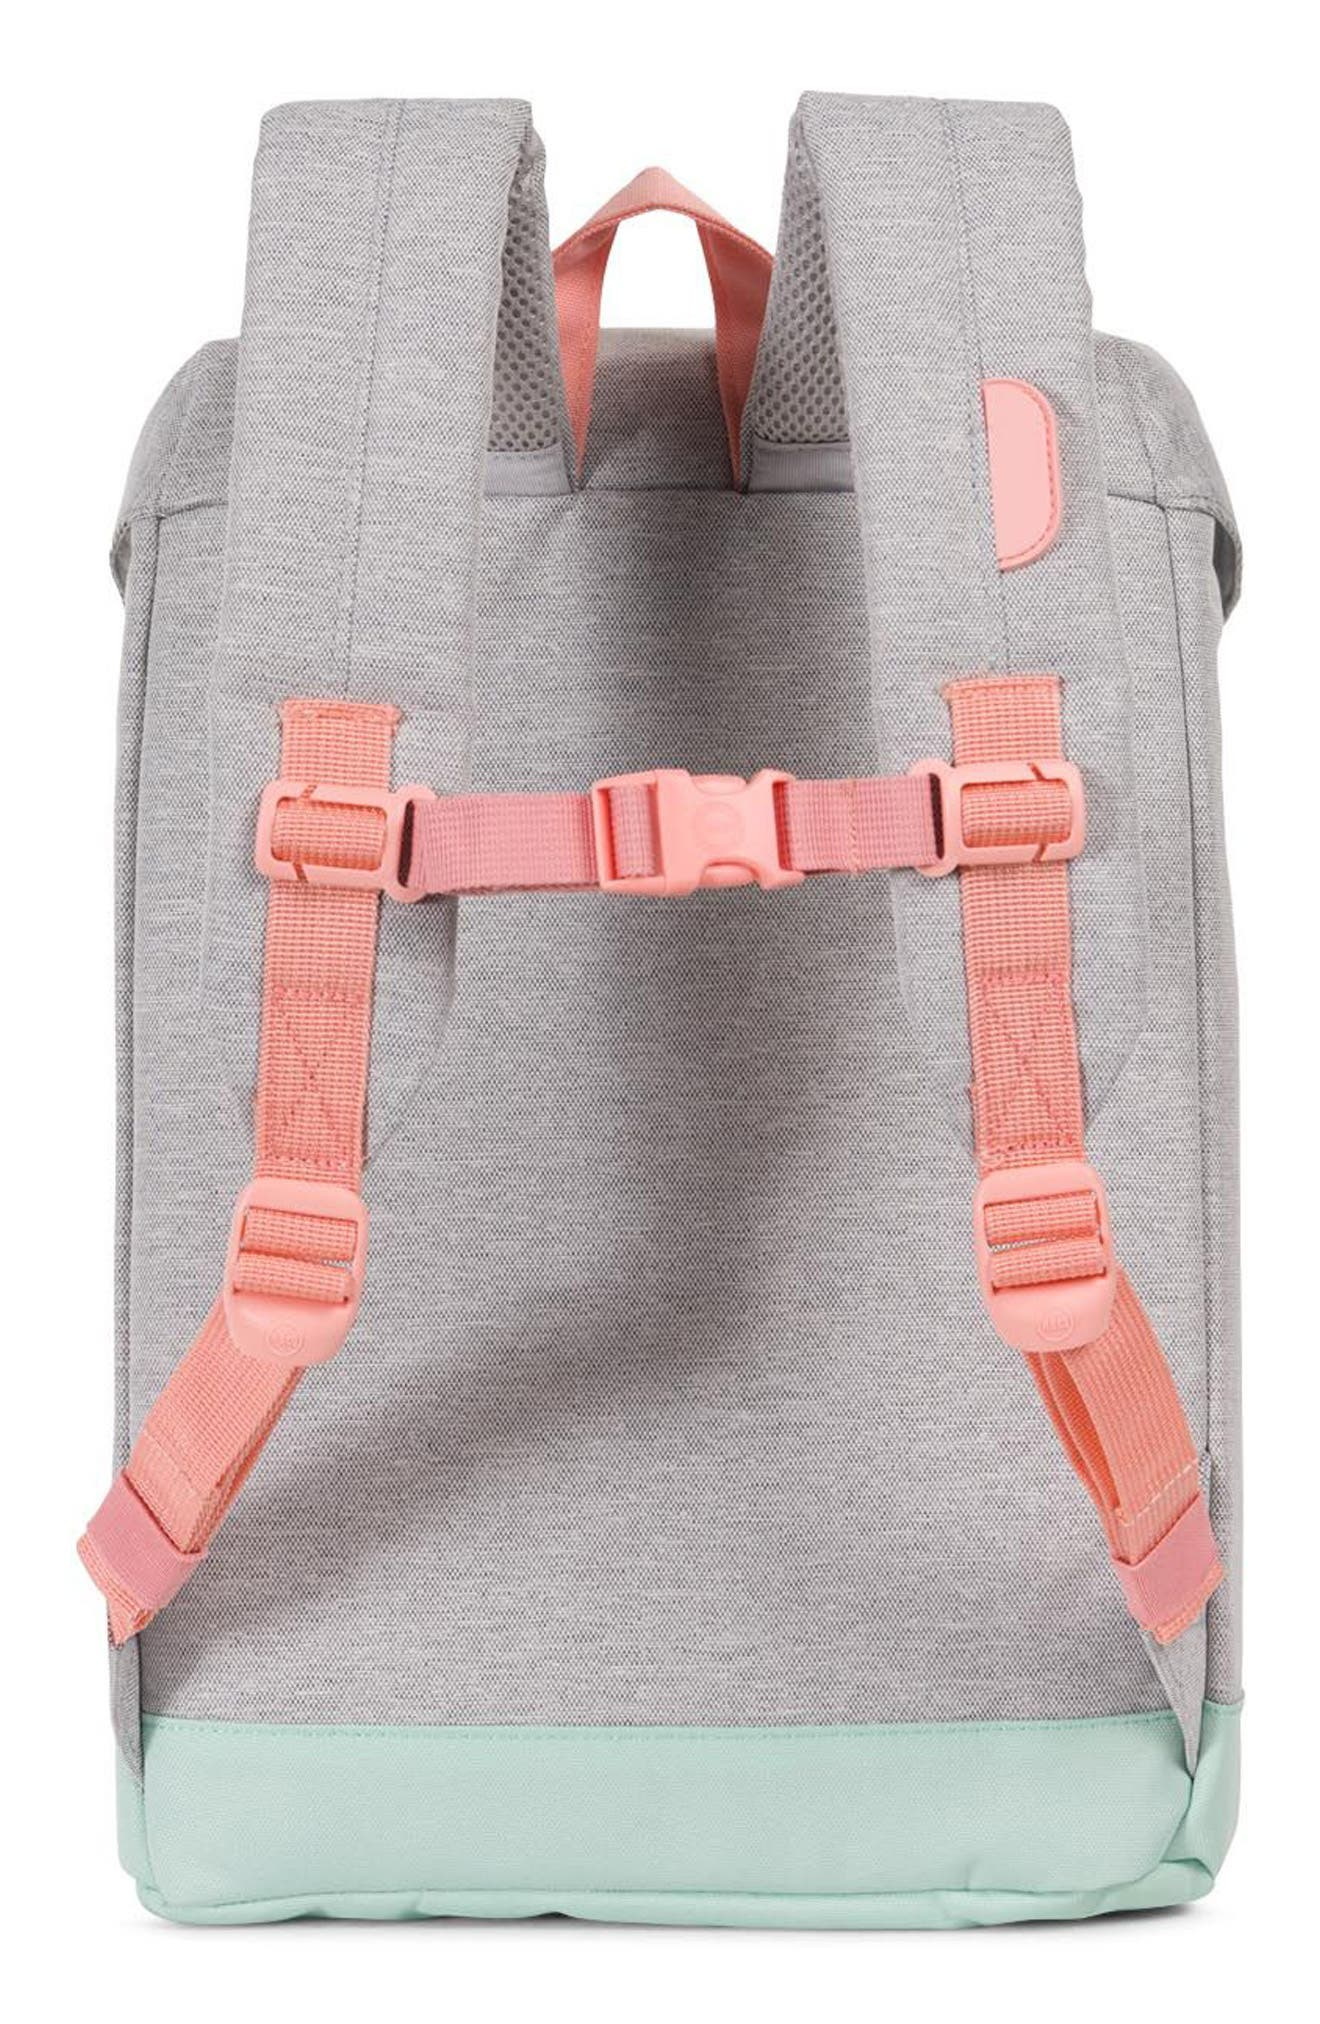 Retreat Backpack,                             Alternate thumbnail 3, color,                             Light Grey/ Yucca/ Peach